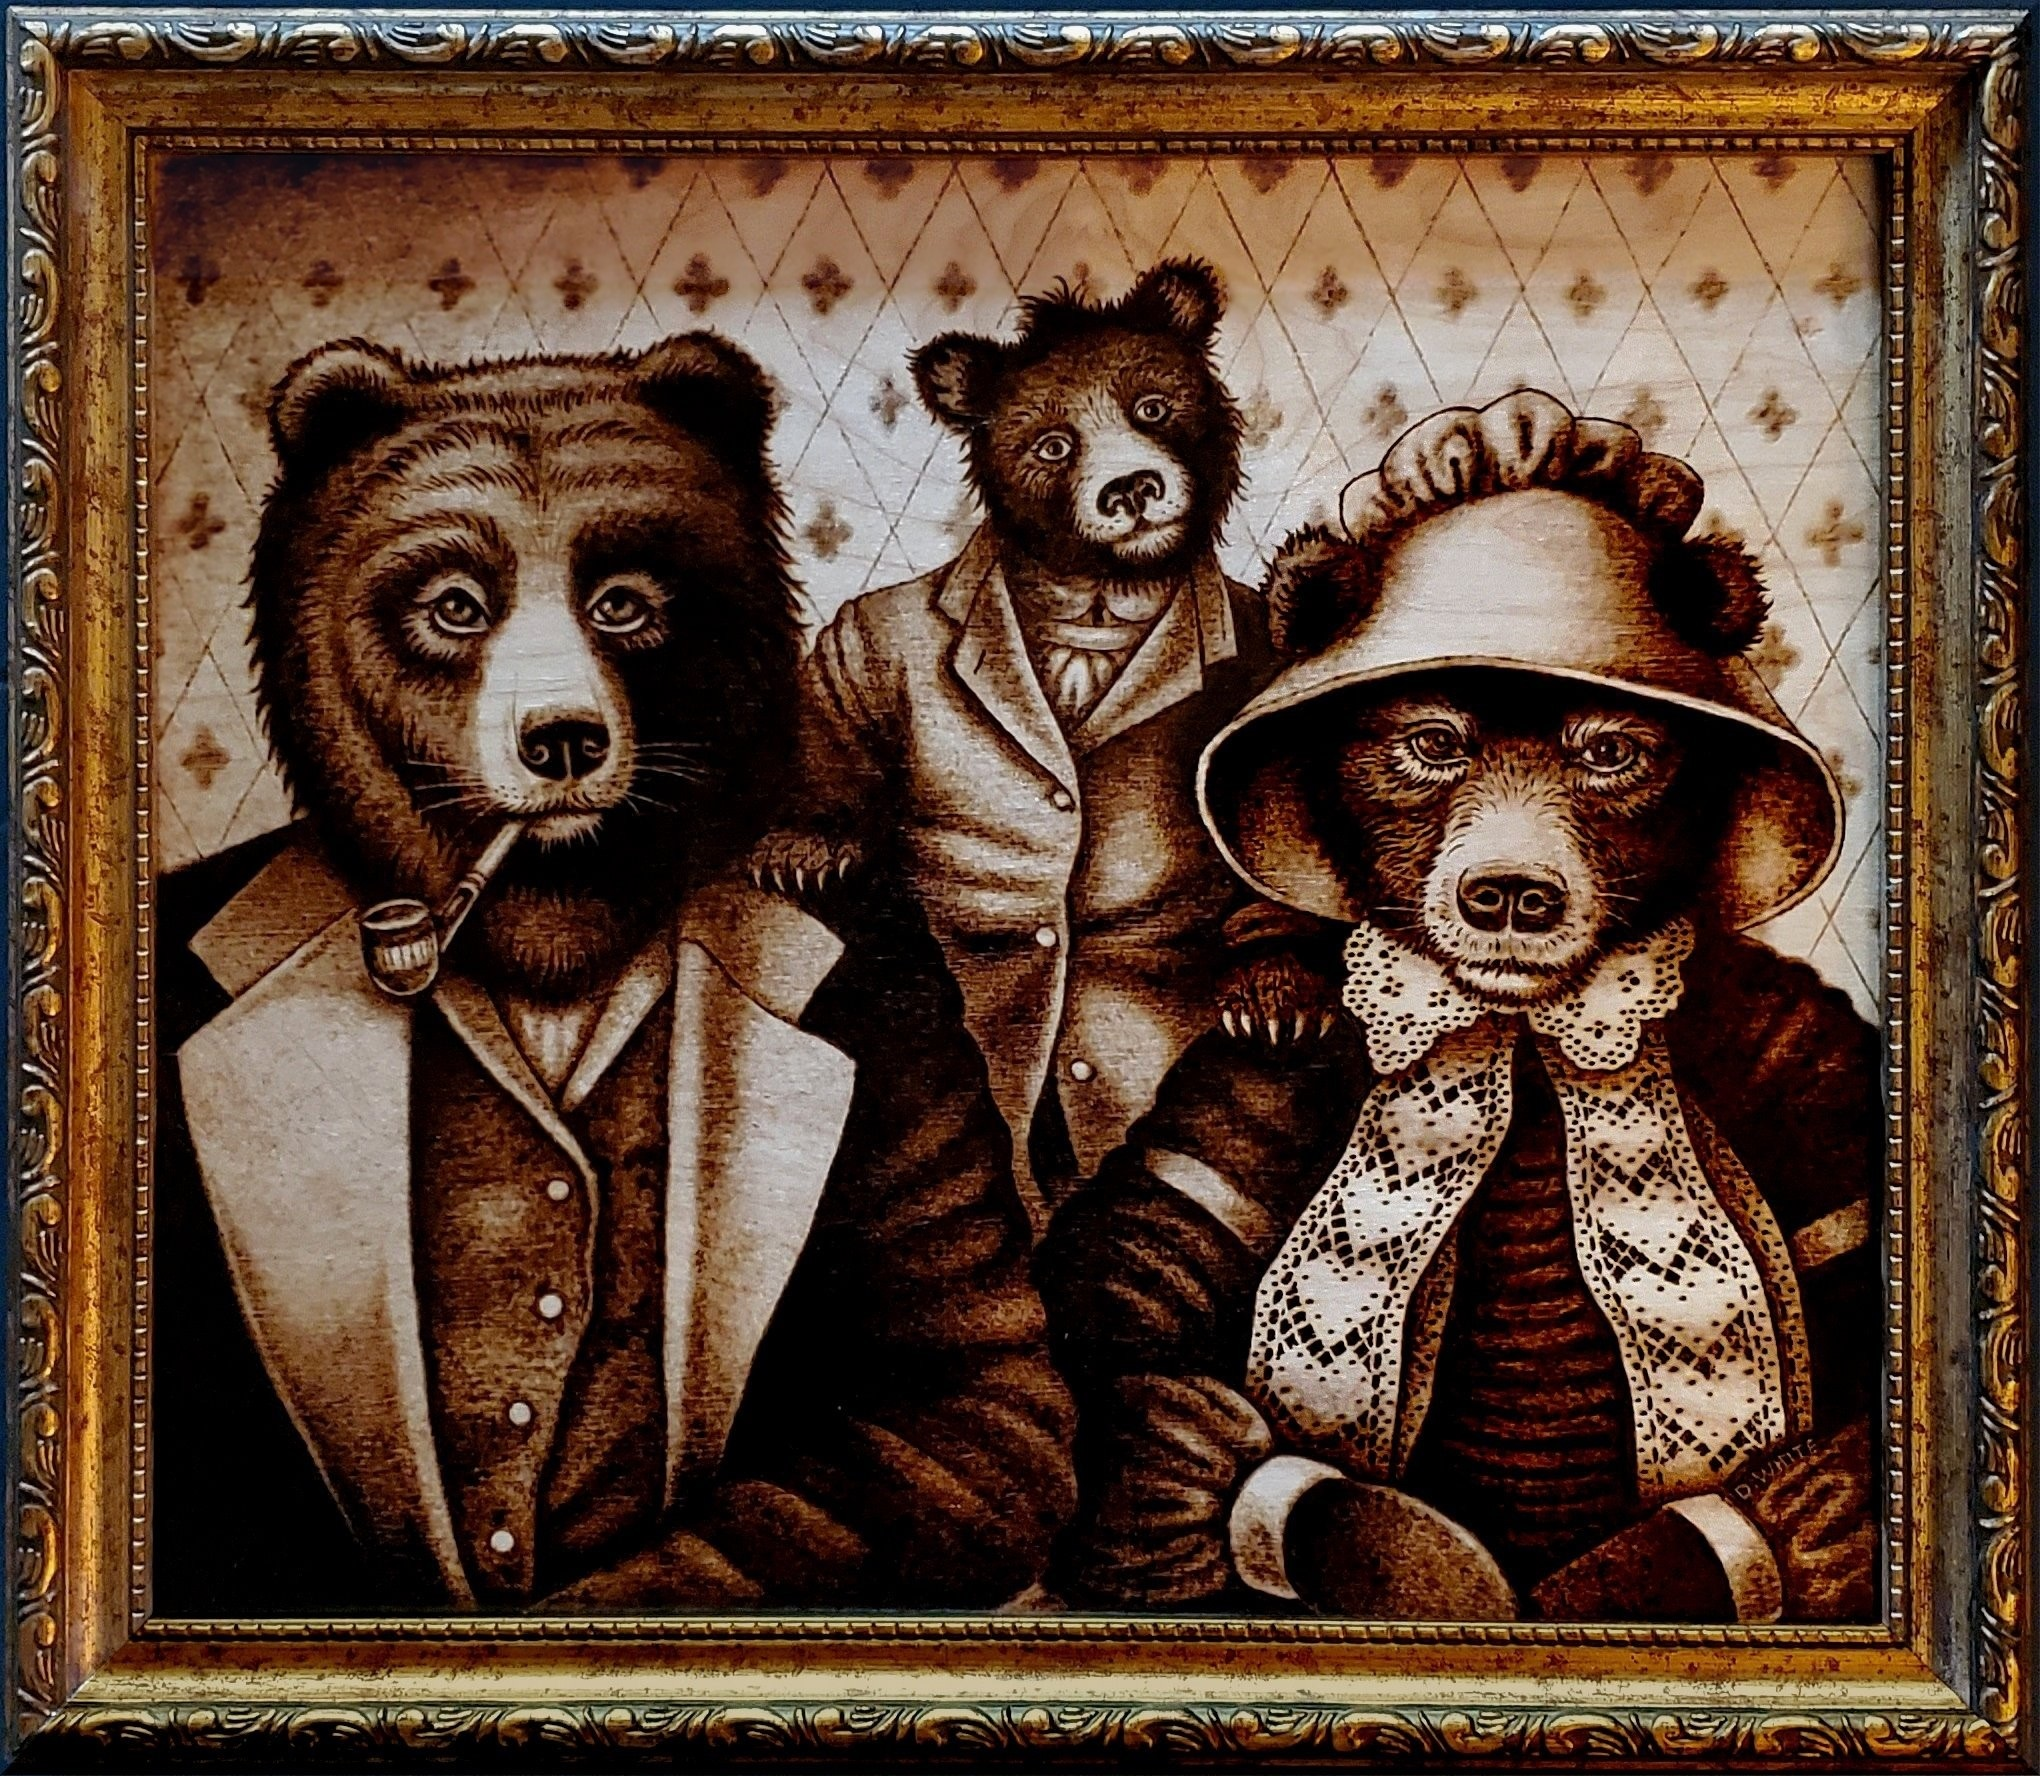 Woodburned image of three bears family, by Don White